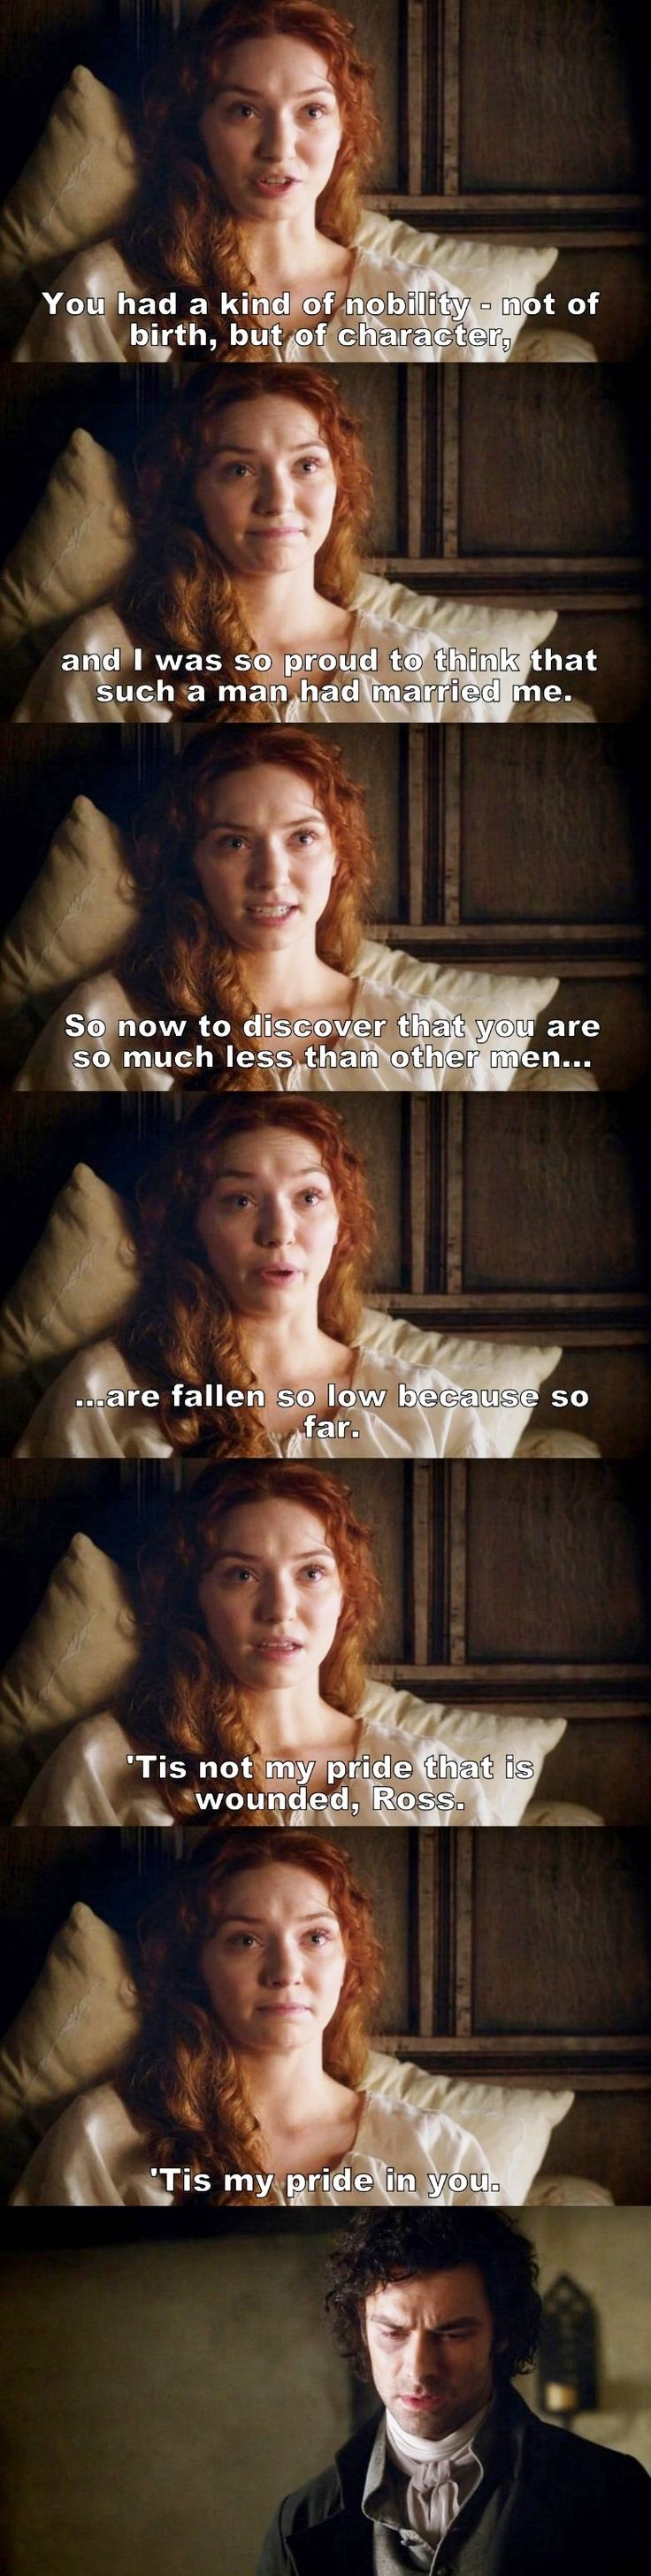 """So now to discover that you are so much less than other men are fallen so low because so far. 'Tis not my pride that is wounded, Ross. 'Tis my pride in you"" - Demelza and Ross #Poldark ((OH, SNAP!!))"